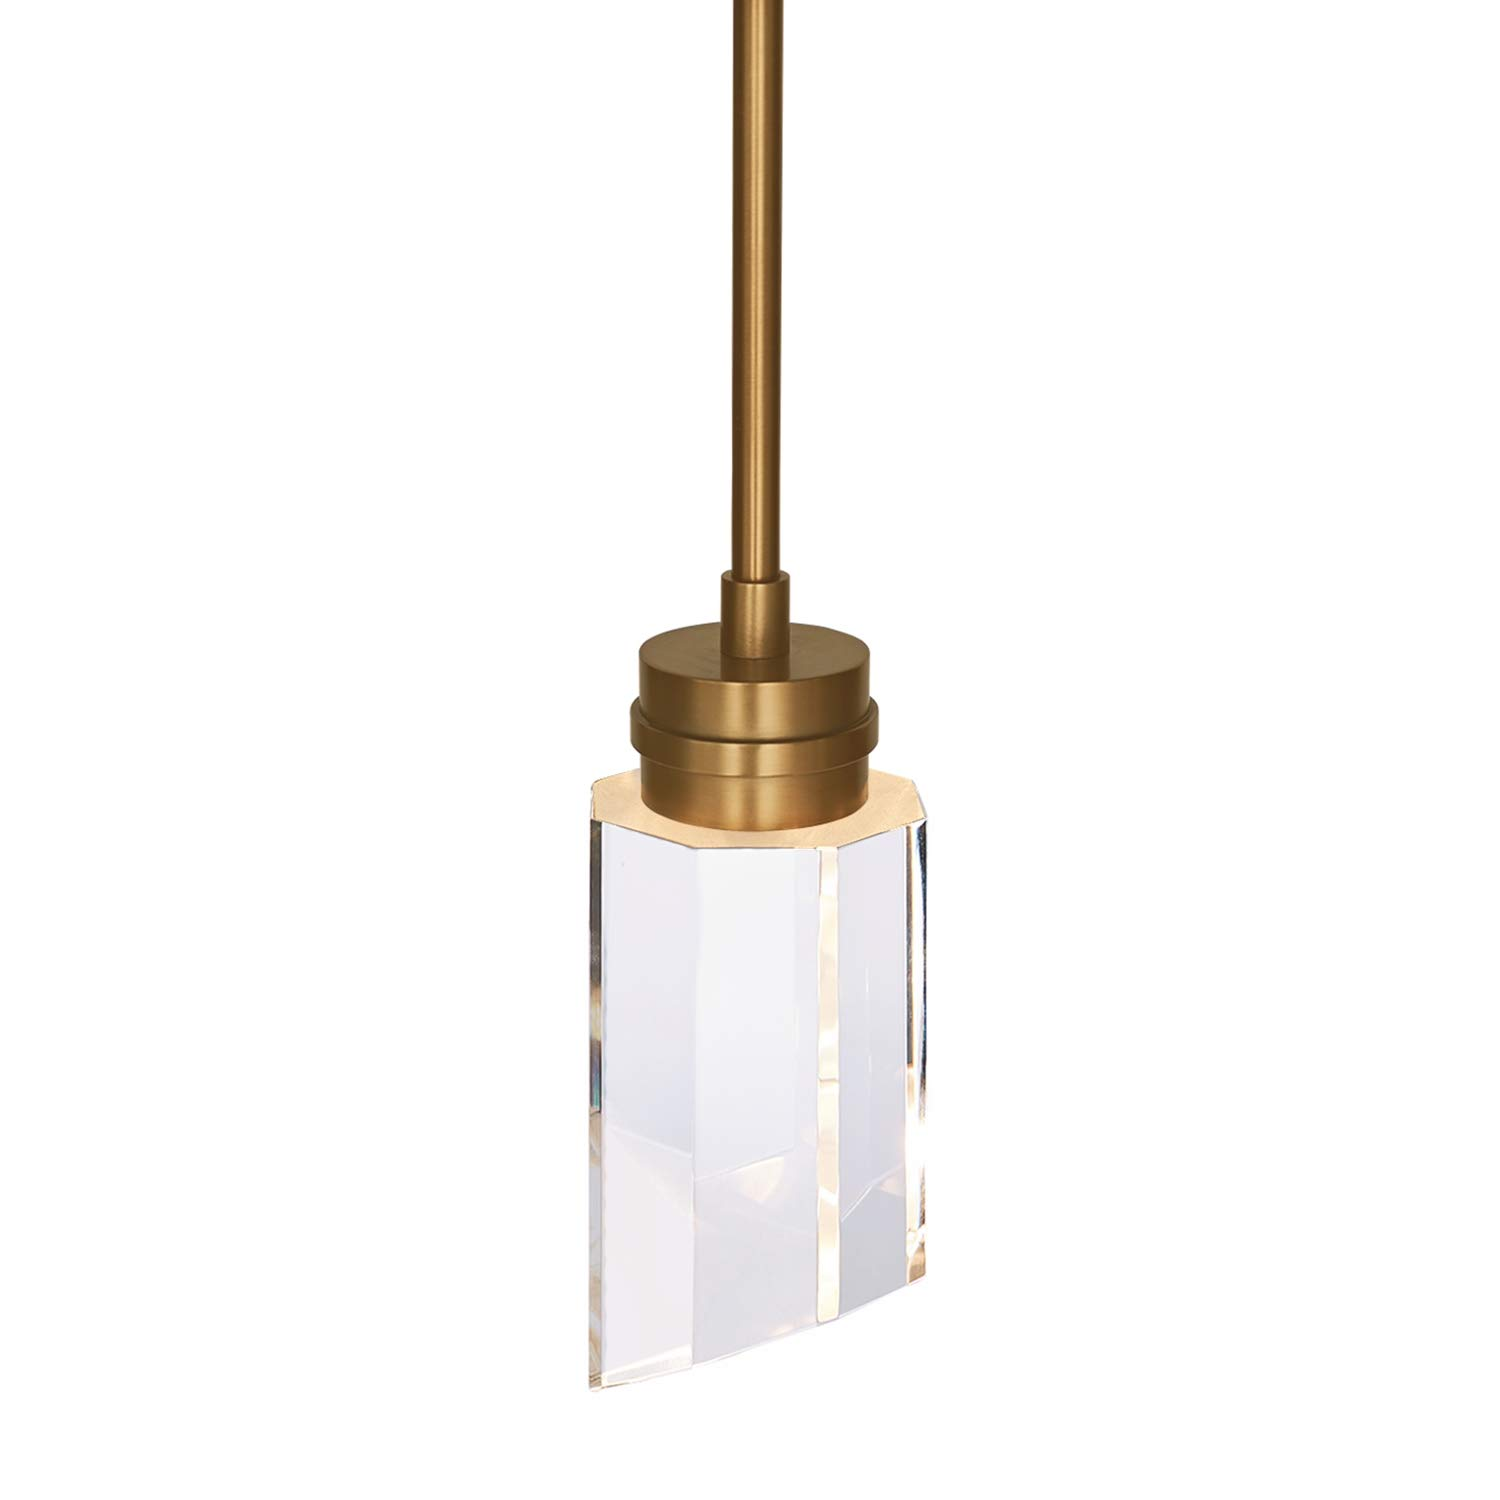 MOTINI Crystal LED Hanging Pendant Light Fixture for Kitchen Island, Modern Pendant Lighting with Clear Solid Crystal Brushed Brass Finish [ETL Listed]